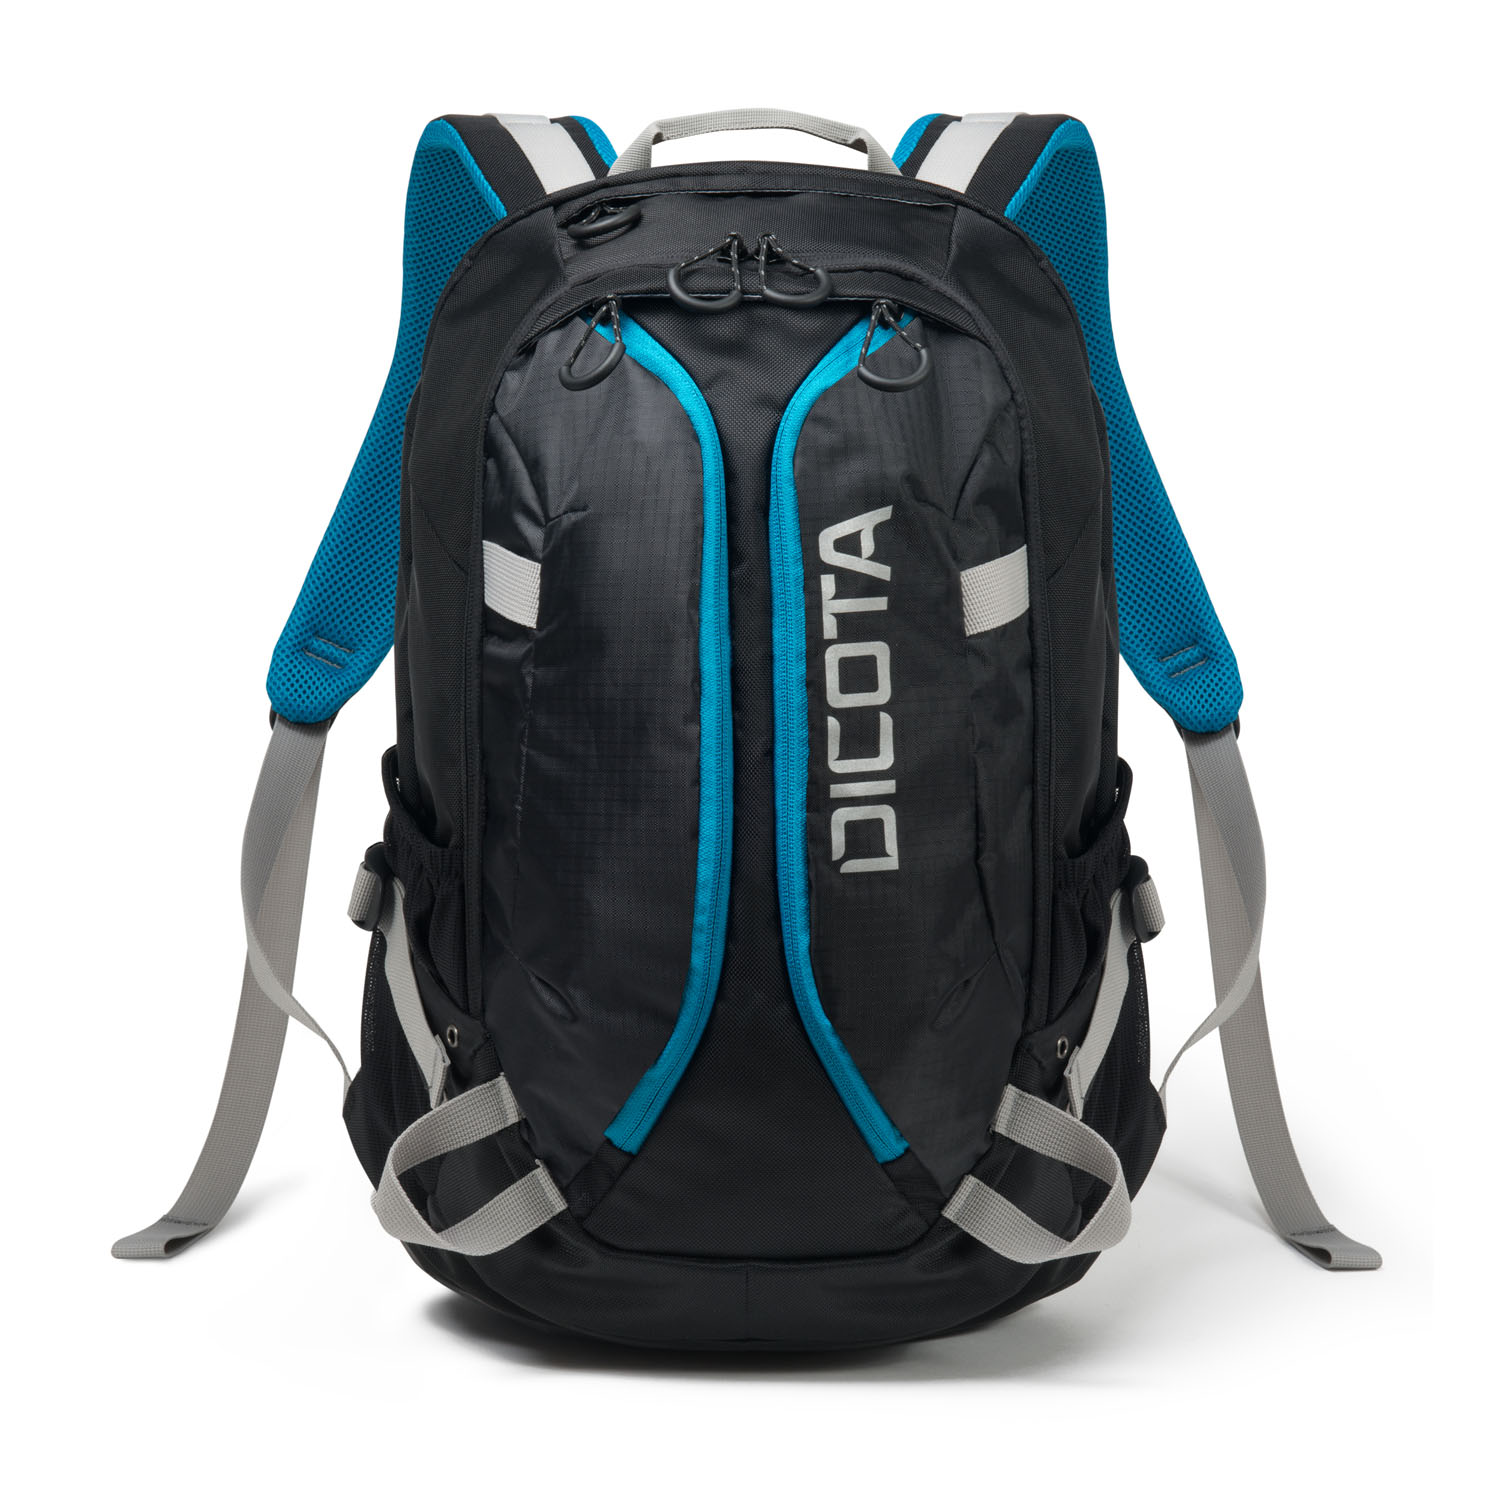 Dicota Backpack Active XL 15-17.3 black/blue